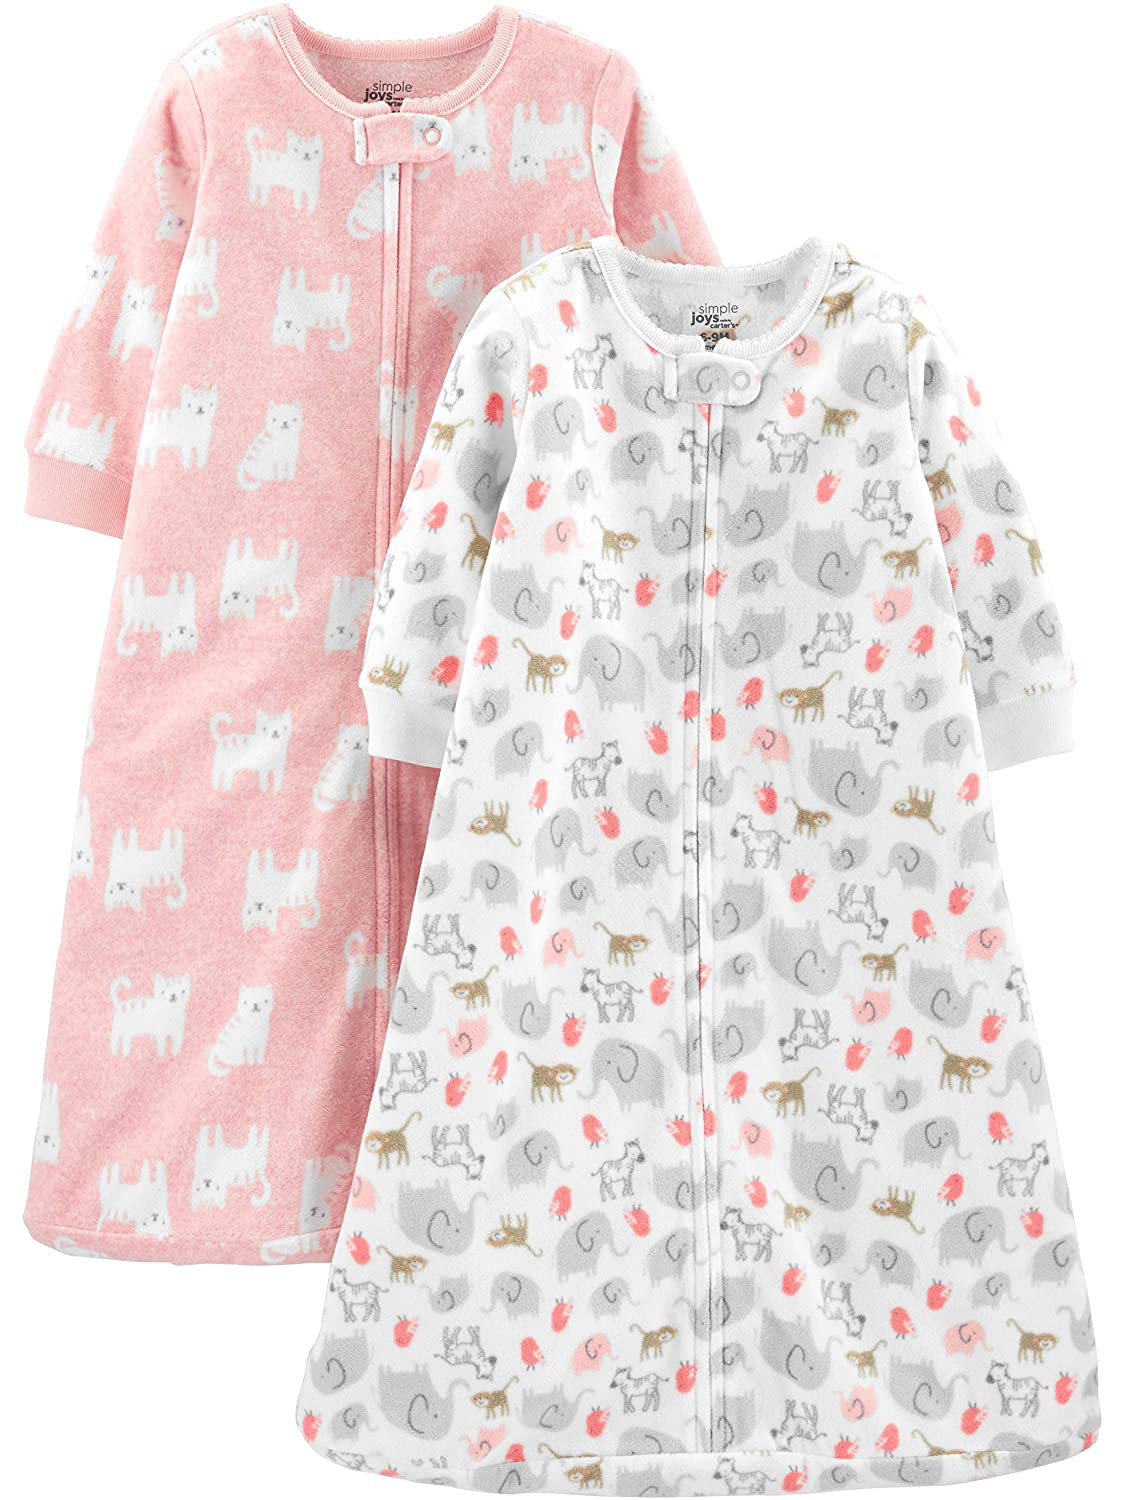 Simple Joys by Carters Baby Girls Microfleece and Cotton Sleepbags